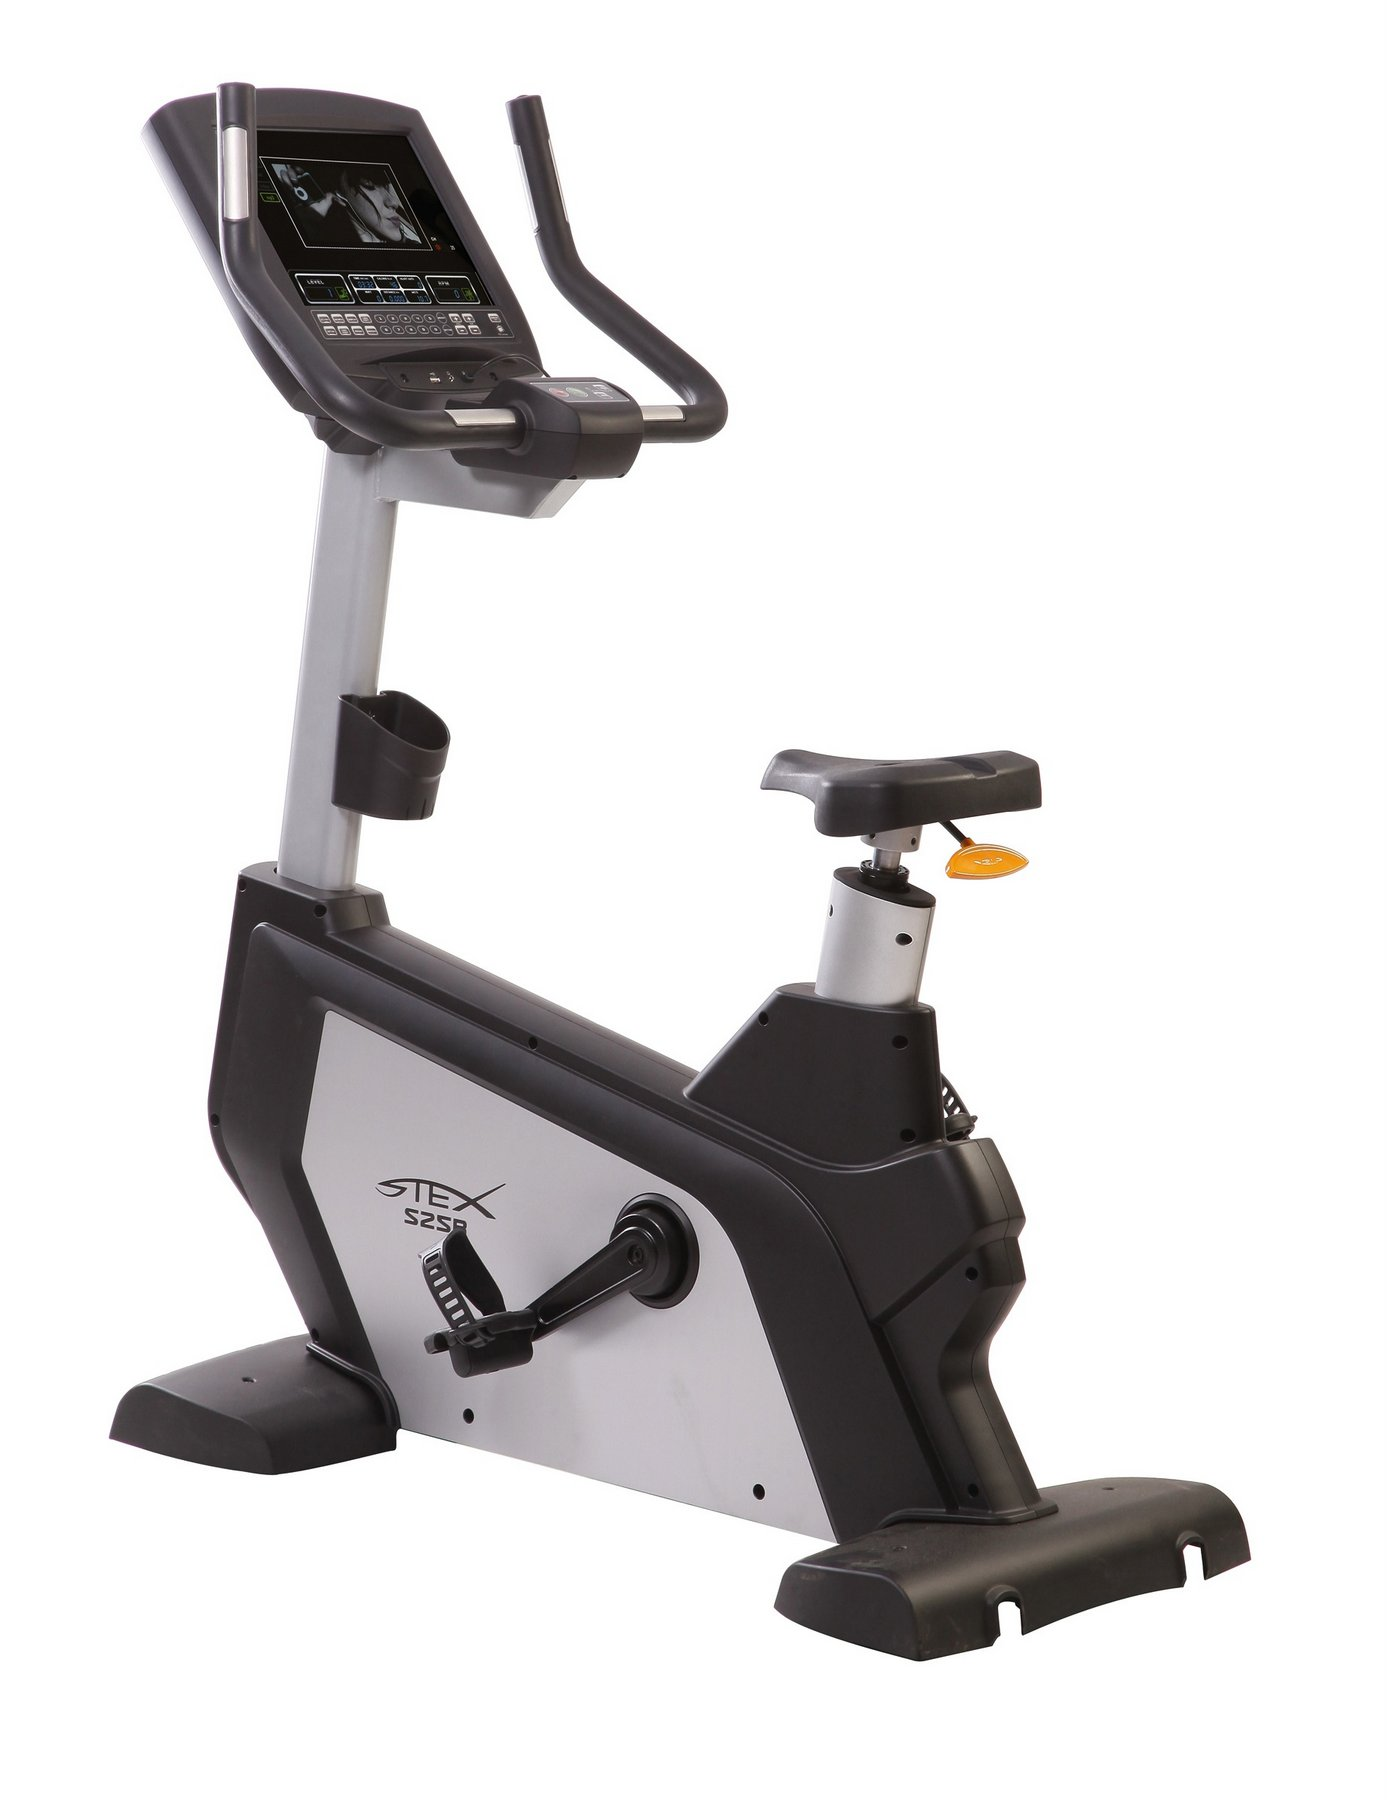 CARDIO STEX S25UX UPRIGHT (DIGITAL TUNER)